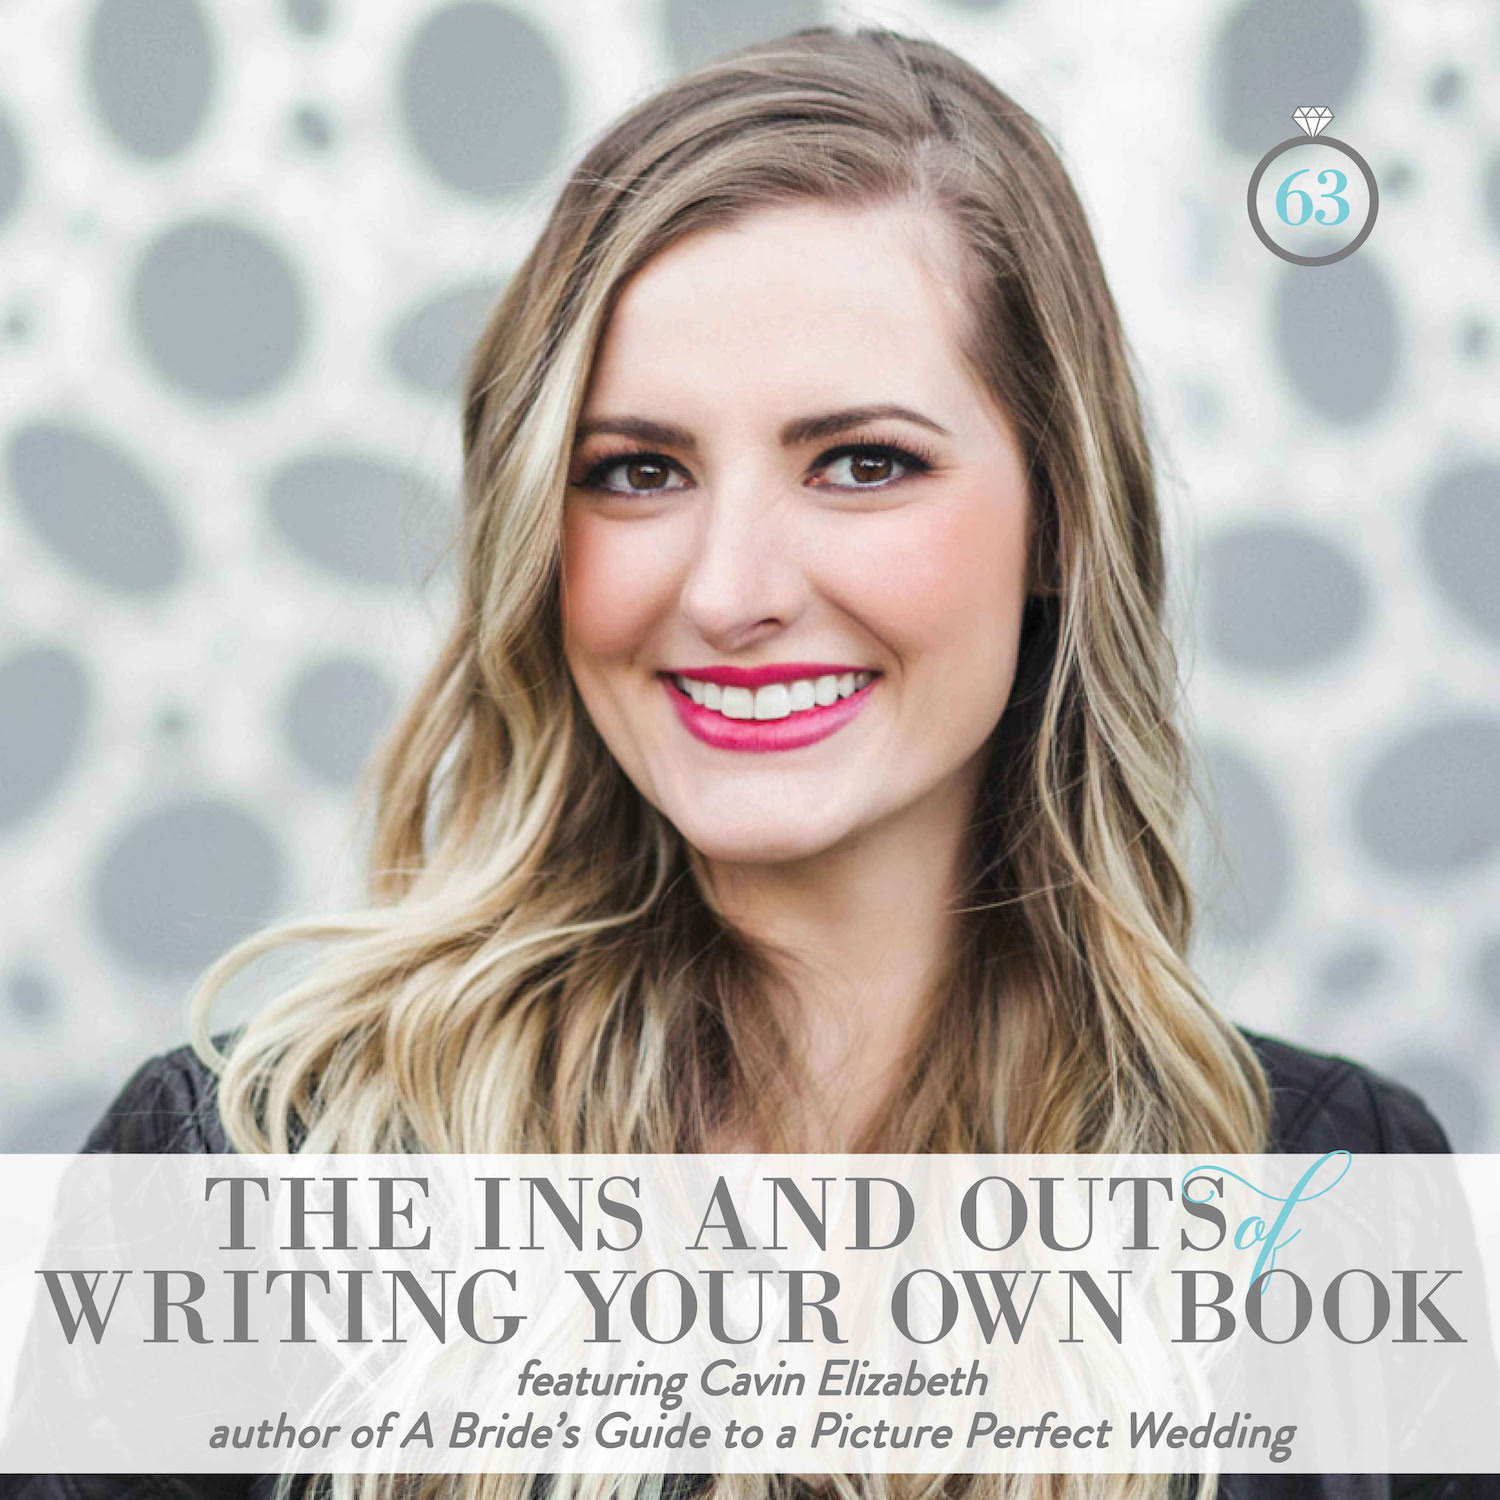 This Week in Weddings Podcast Episode 63 on The Ins and Outs of Writing Your Own Book